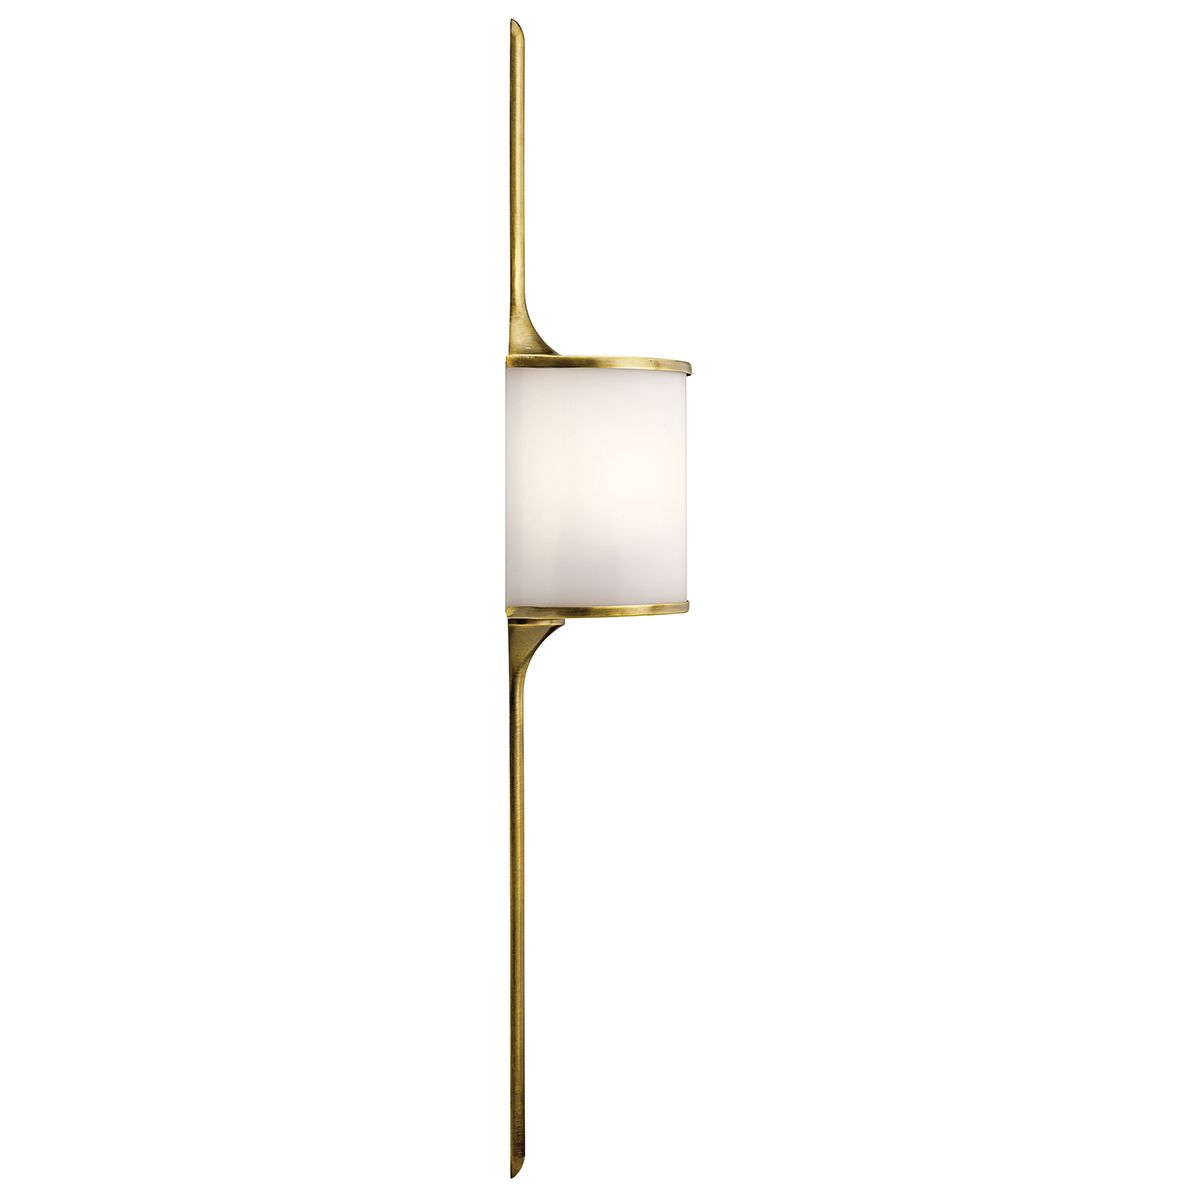 Elstead Kichler Mona wall light brass KL/MONA/L NBR